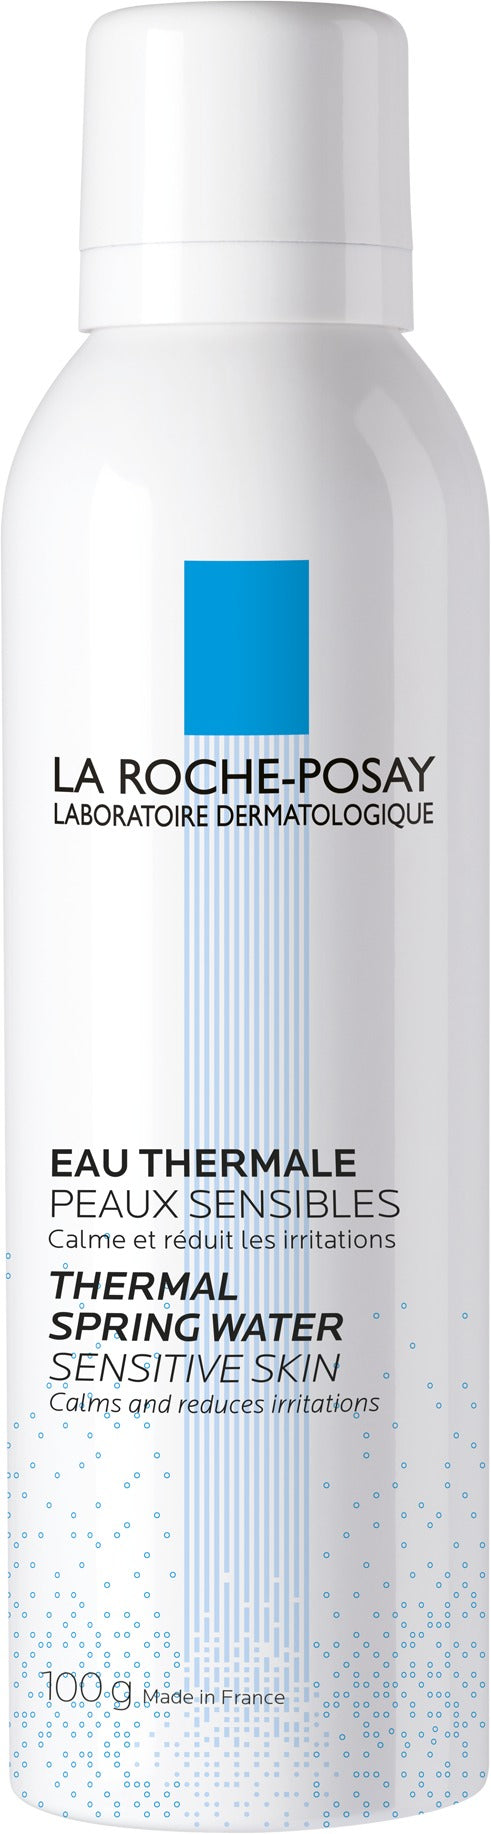 La Roche-Posay Thermal Spring Water 100ml